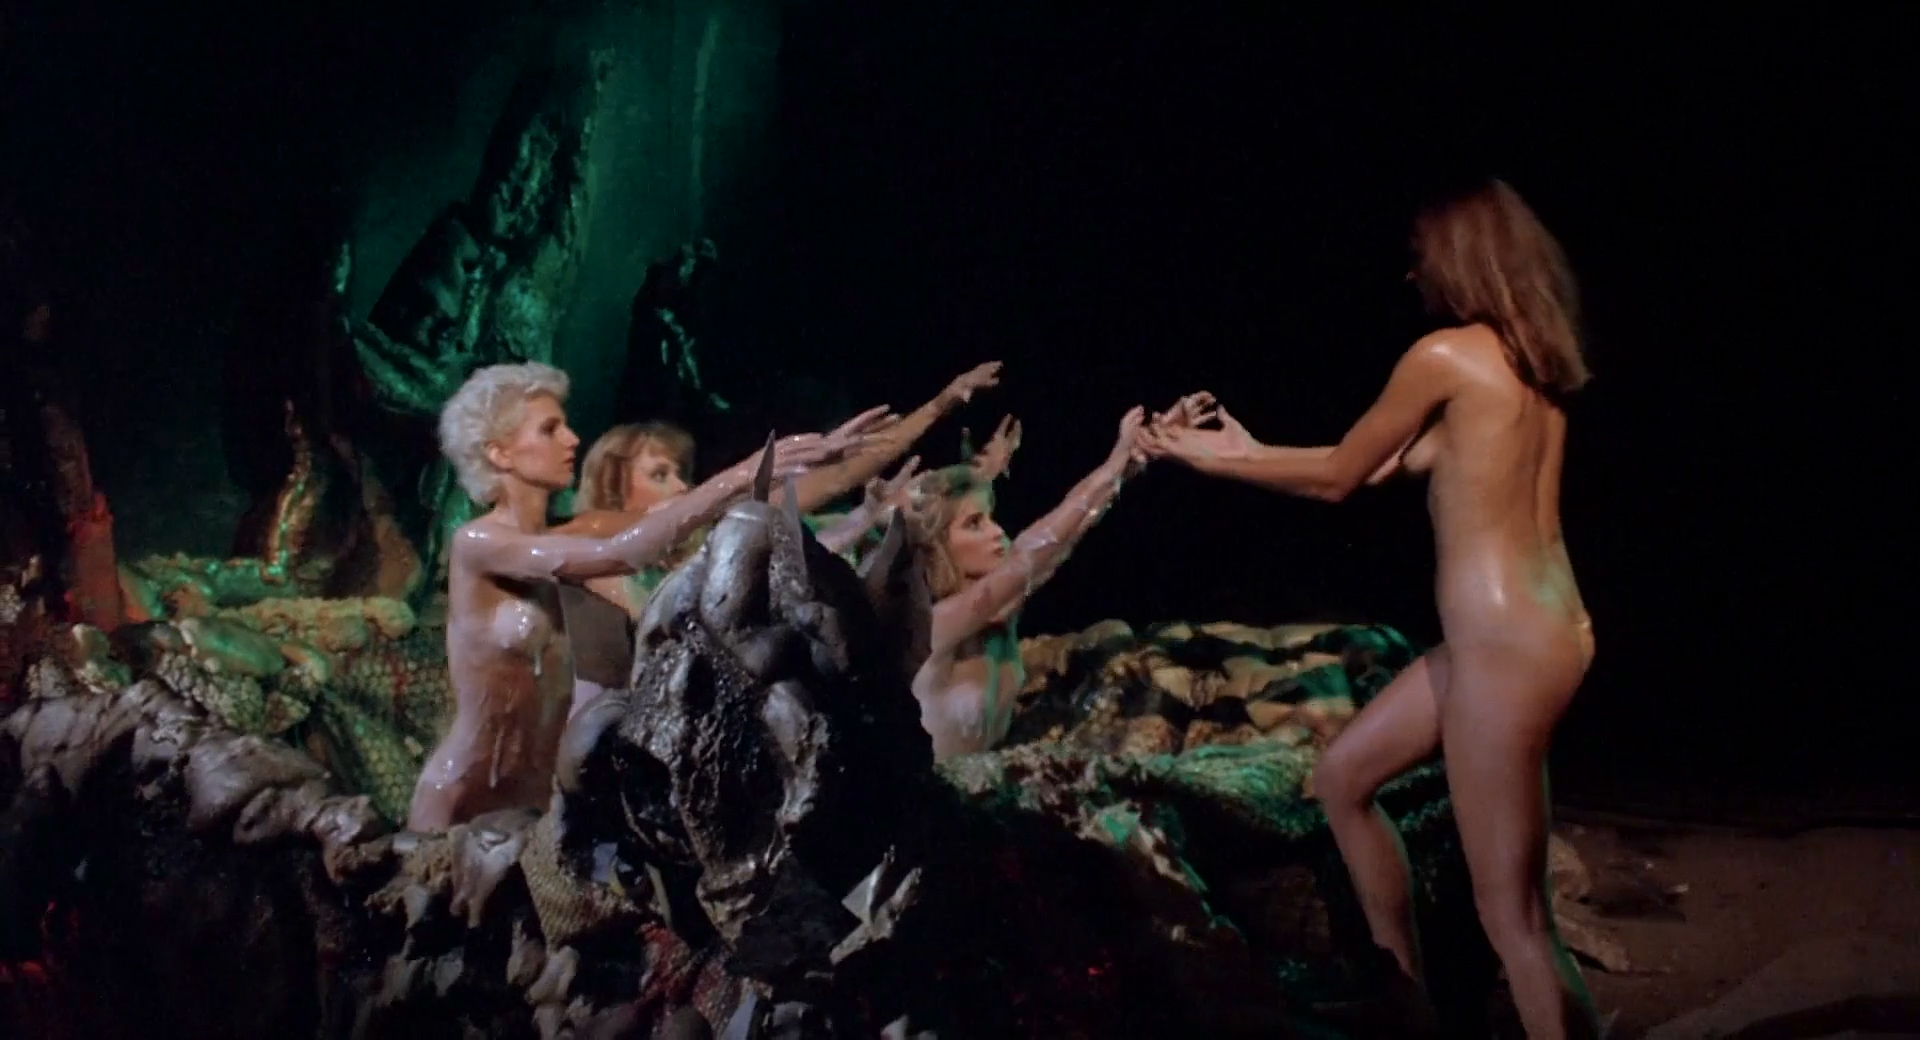 Frances Raines nude butt boobs, LeeAnne Baker, Natalie O'Connell other's nude - Breeders (1986) HD 1080p (17)